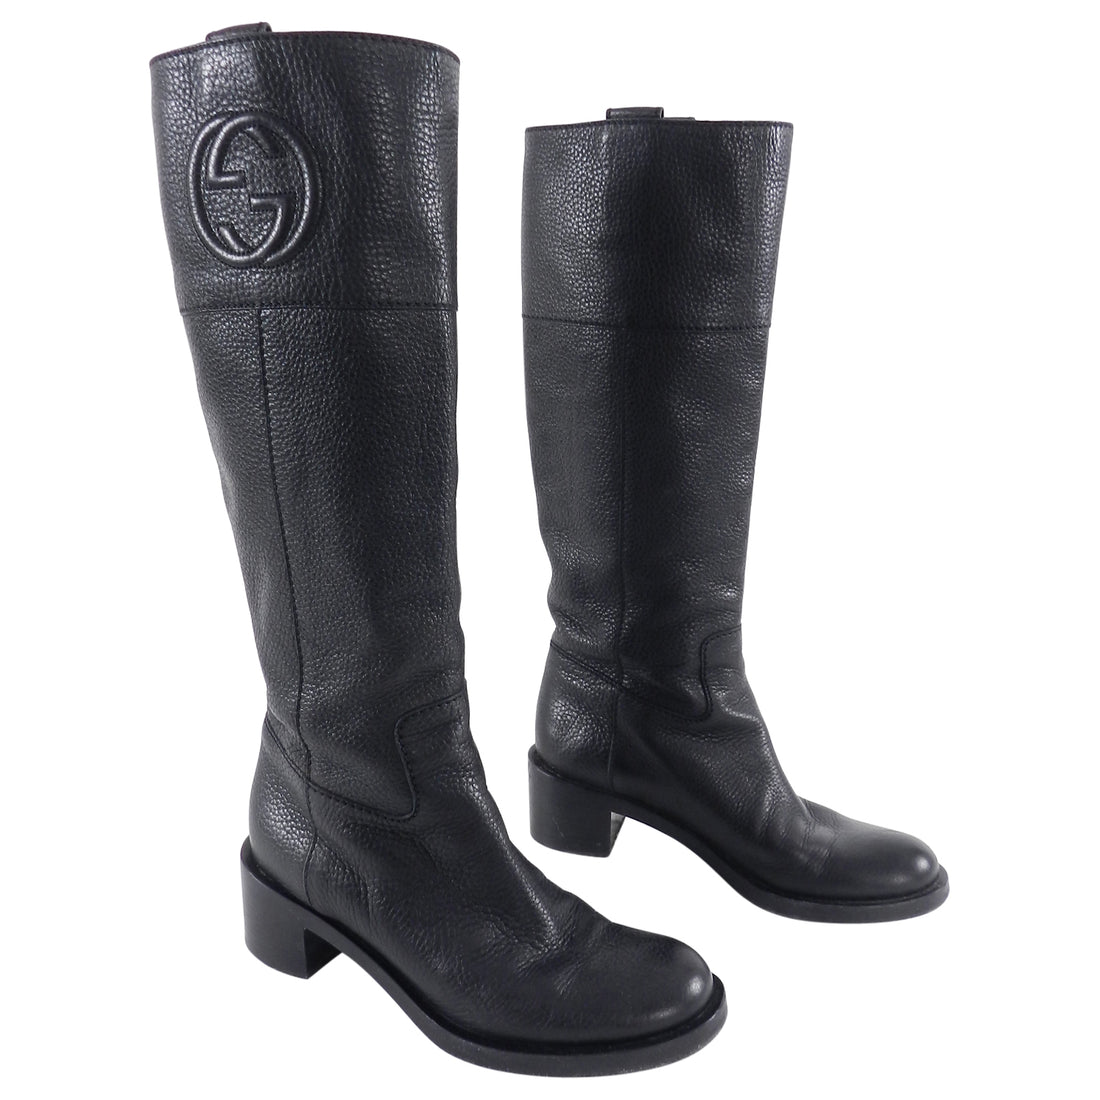 Gucci Tall Black Grained Leather GG Logo Boots With Box - 37.5